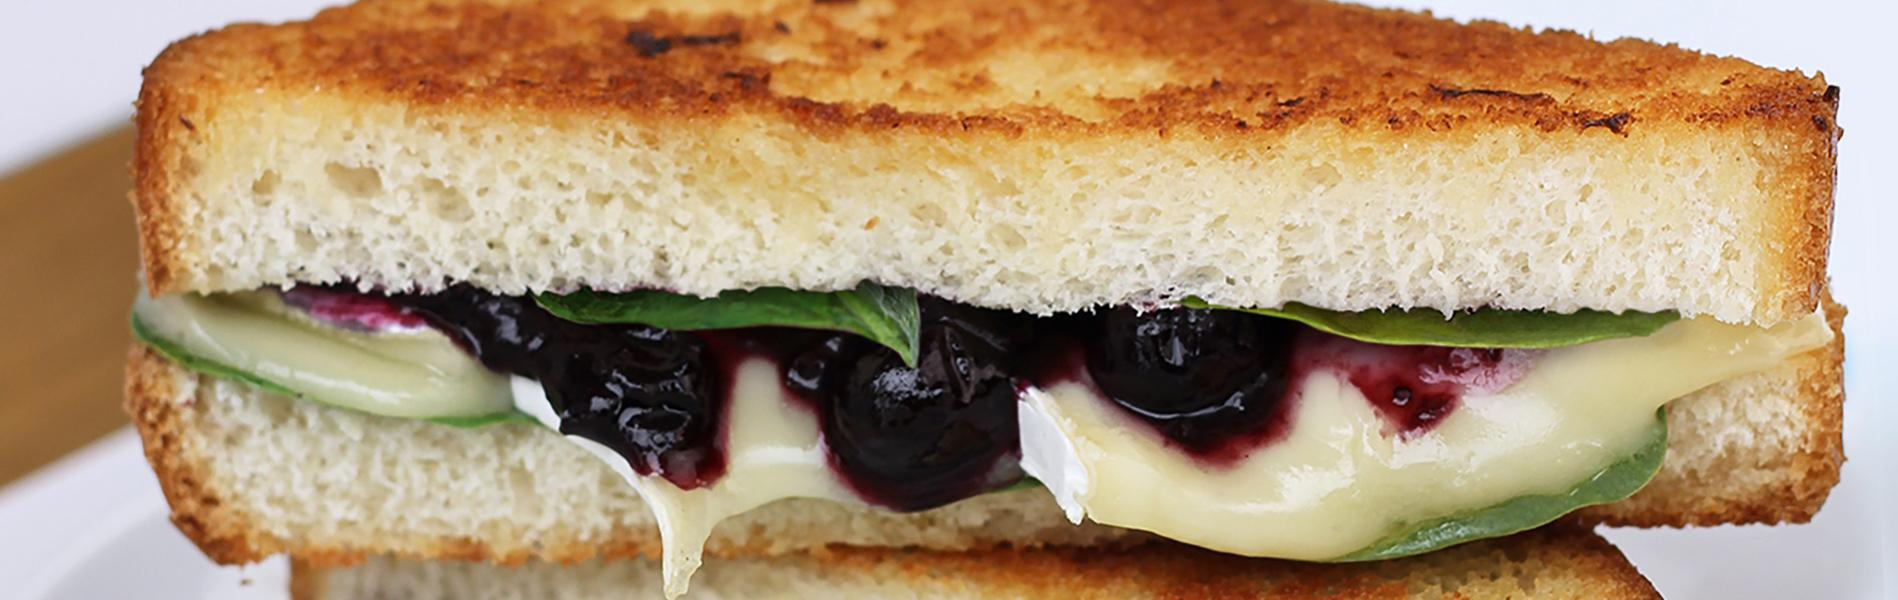 Balsamic Blueberry Brie Grilled Cheese Sandwich